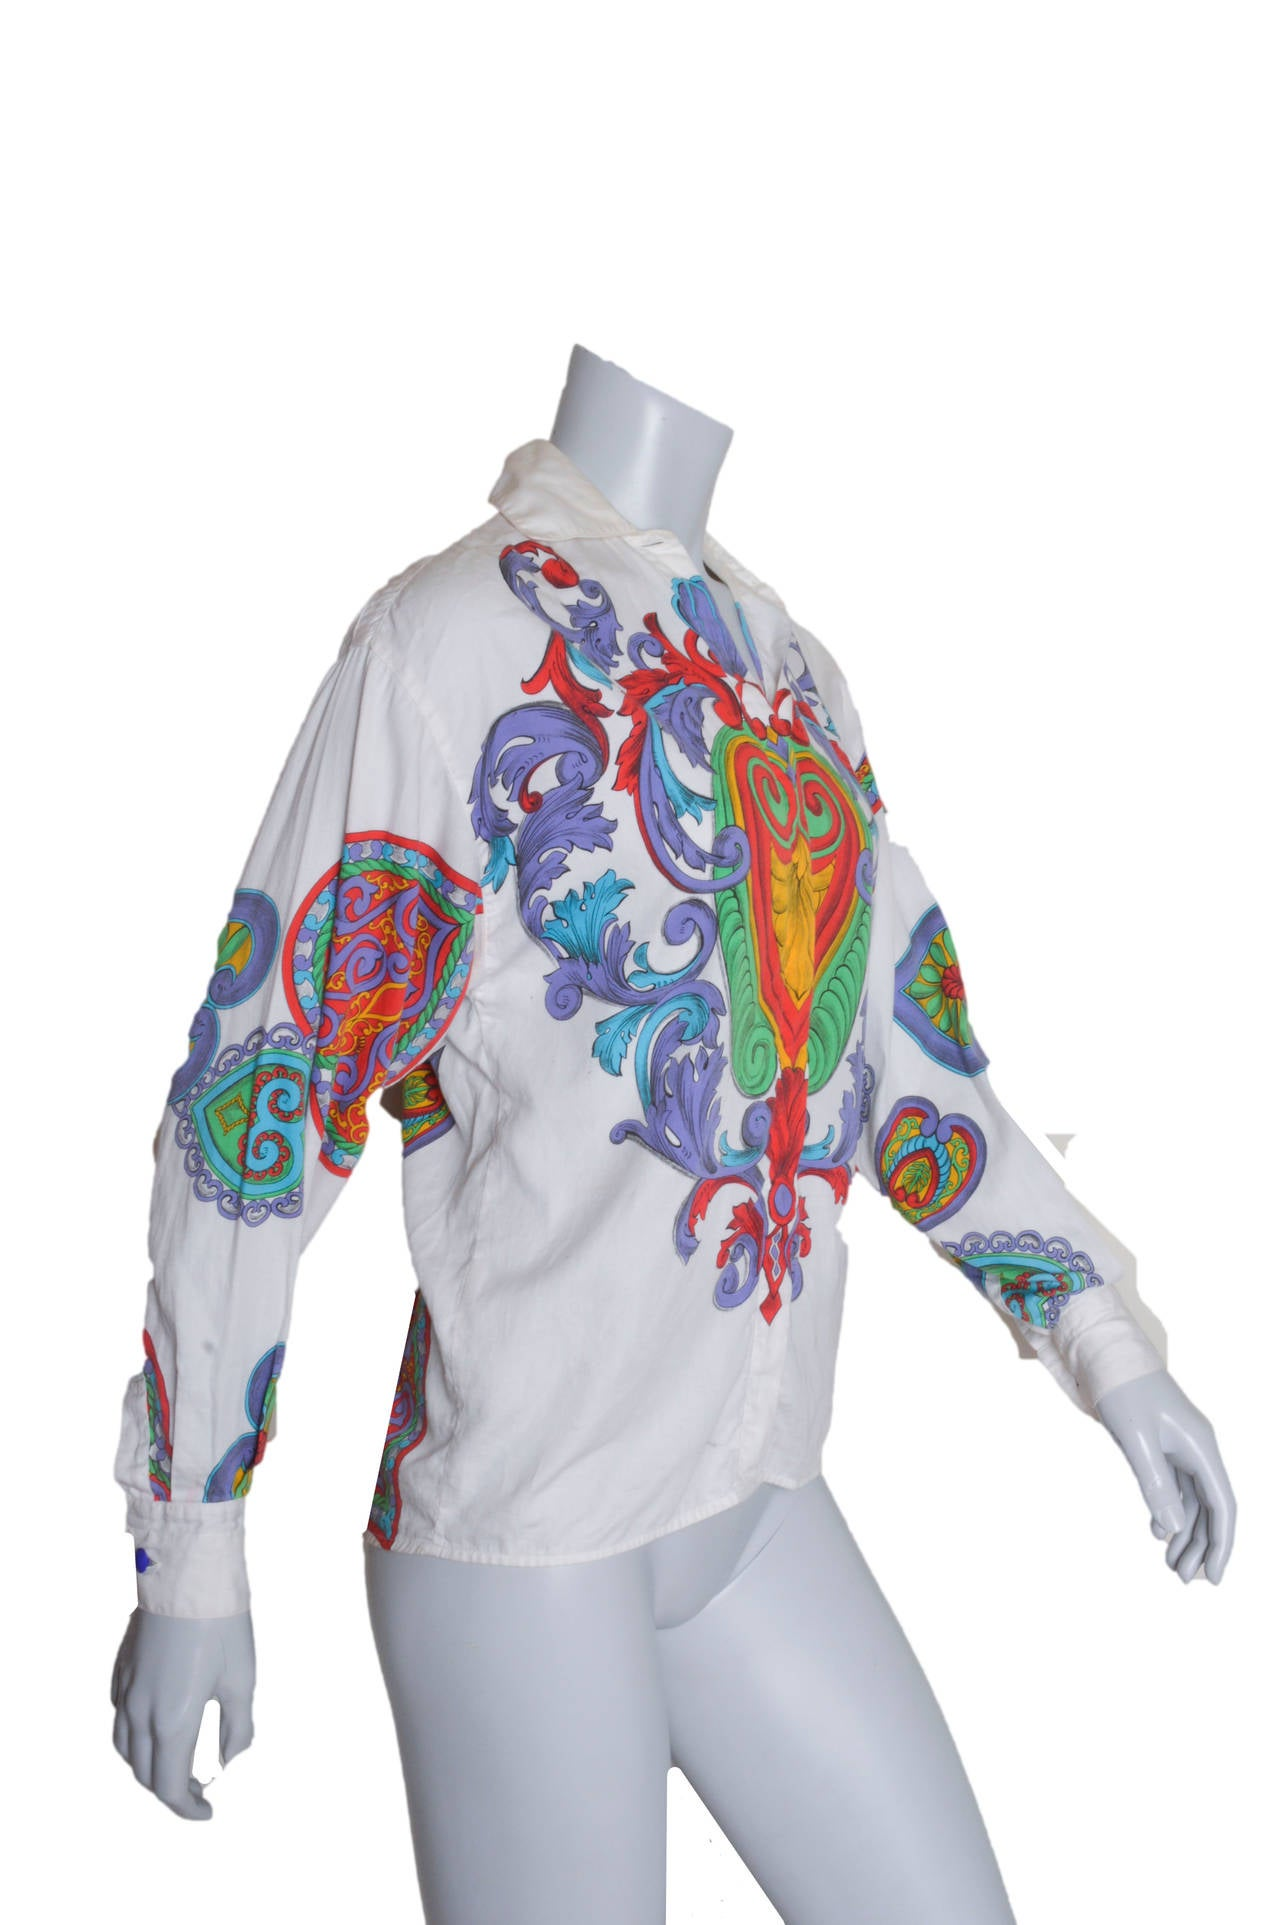 Vintage 1990's Gianni Versace Versus blouse.